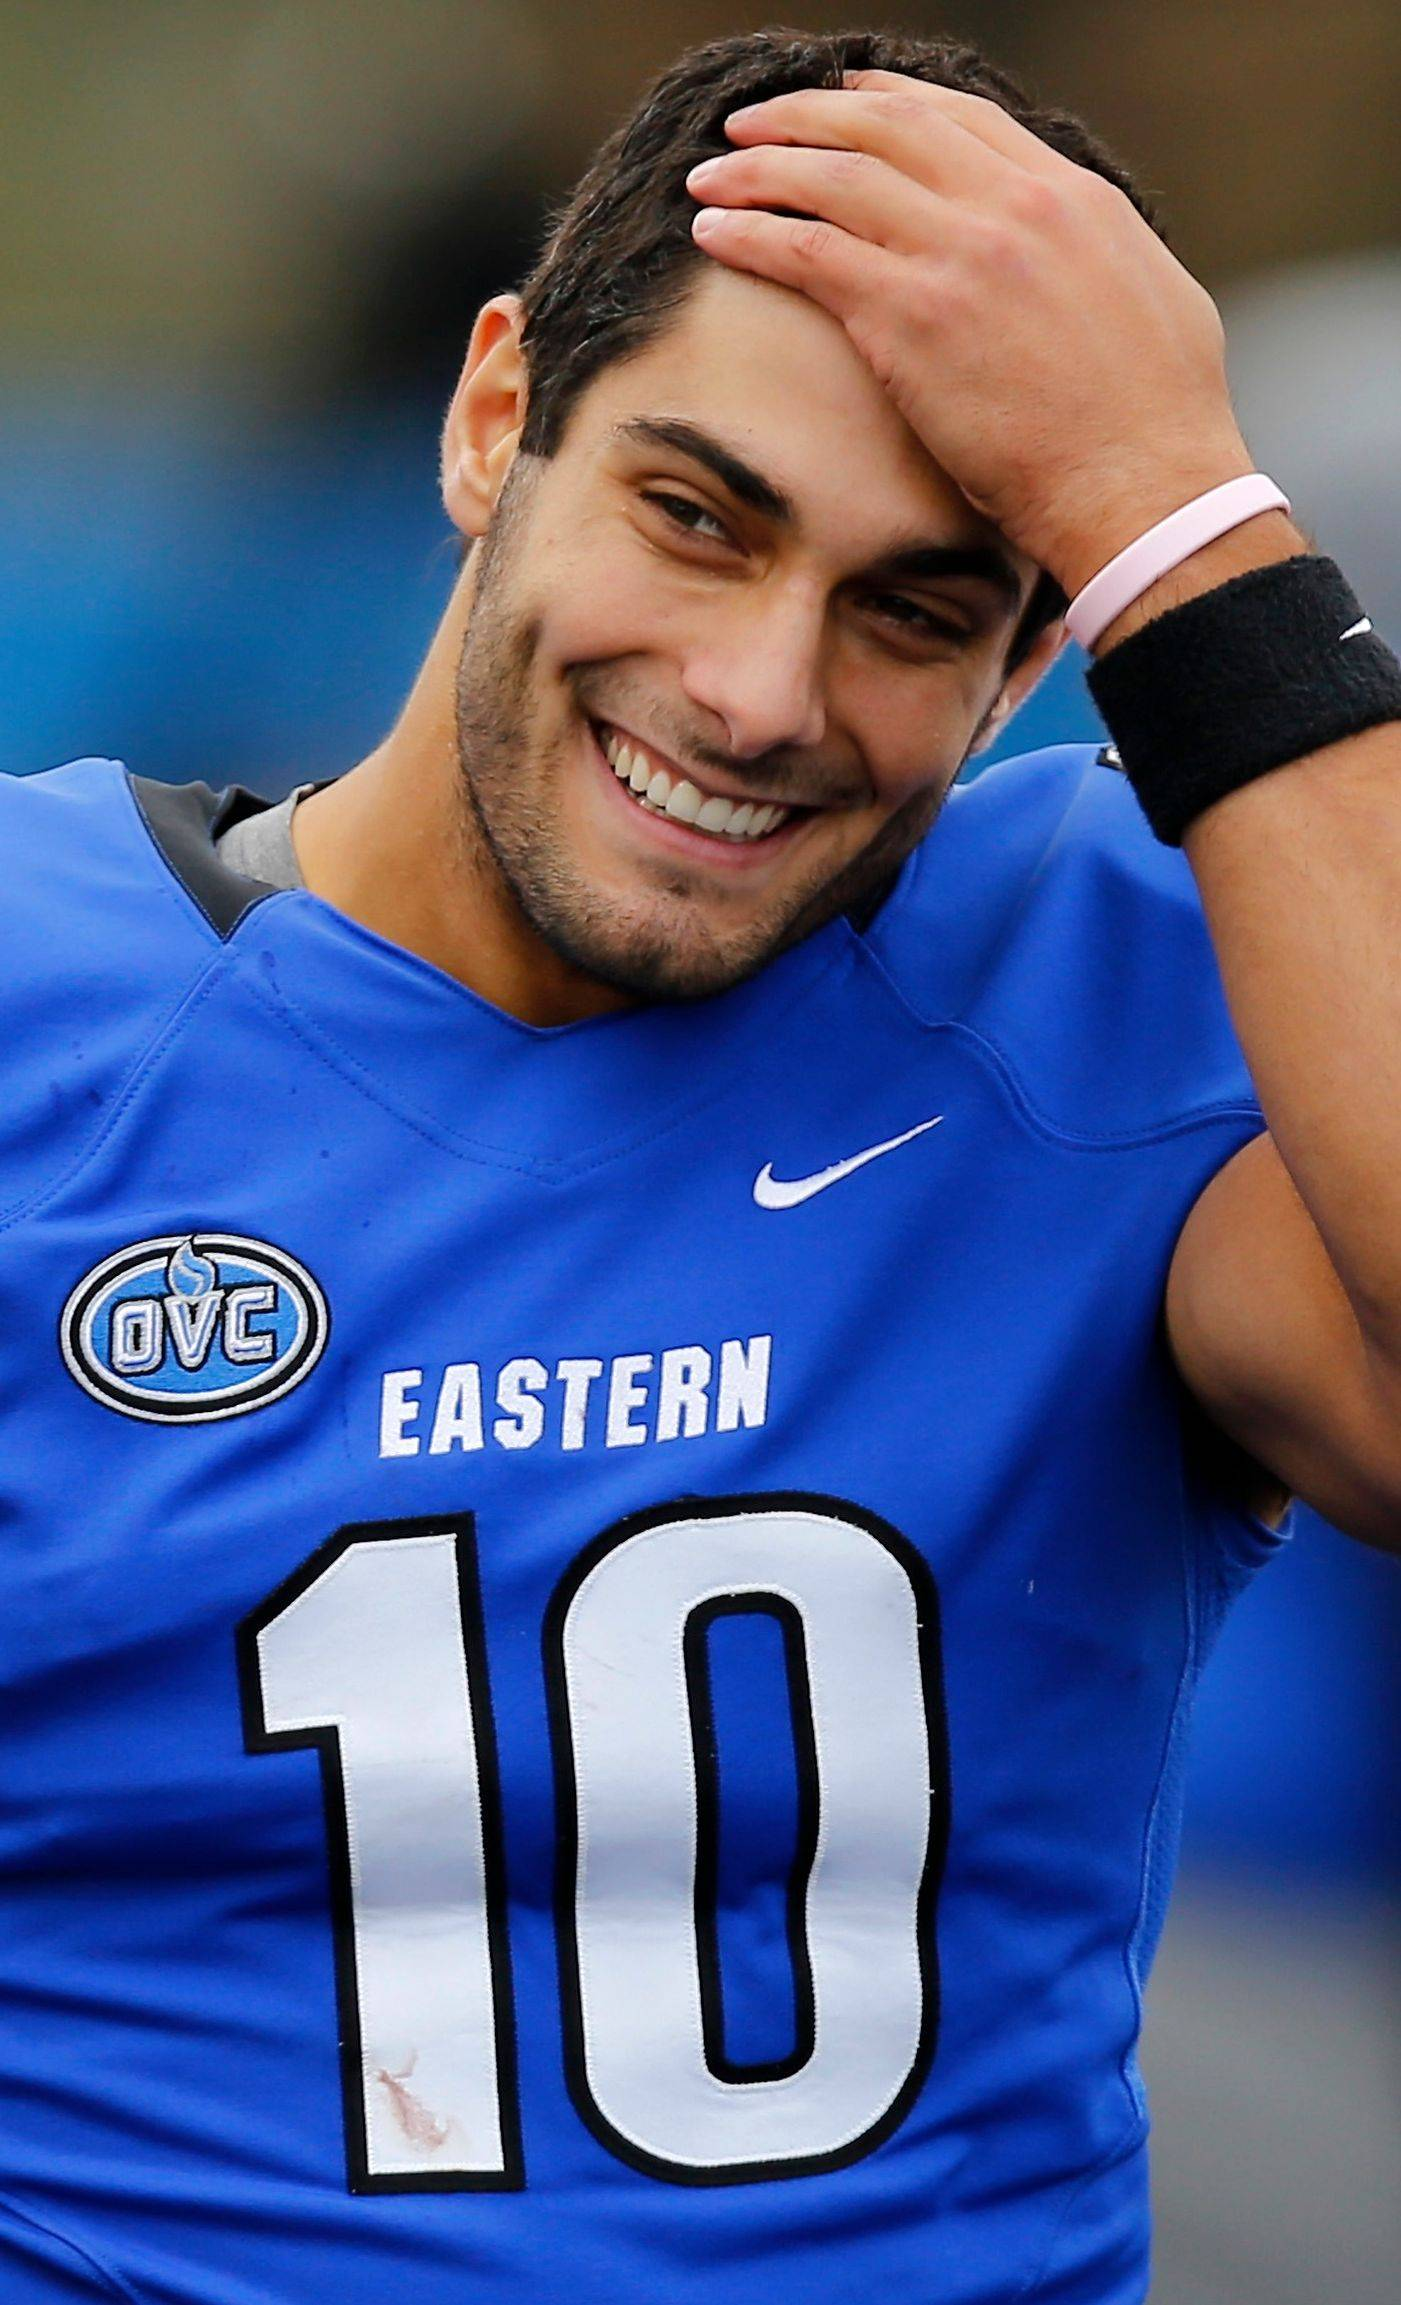 All 32 NFL teams have been on Eastern Illinois' campus to evaluate QB Jimmy Garroppolo this fall. The Rolling Meadows product will lead his team against Towson today into the Football Championship Subdivision quarterfinals.